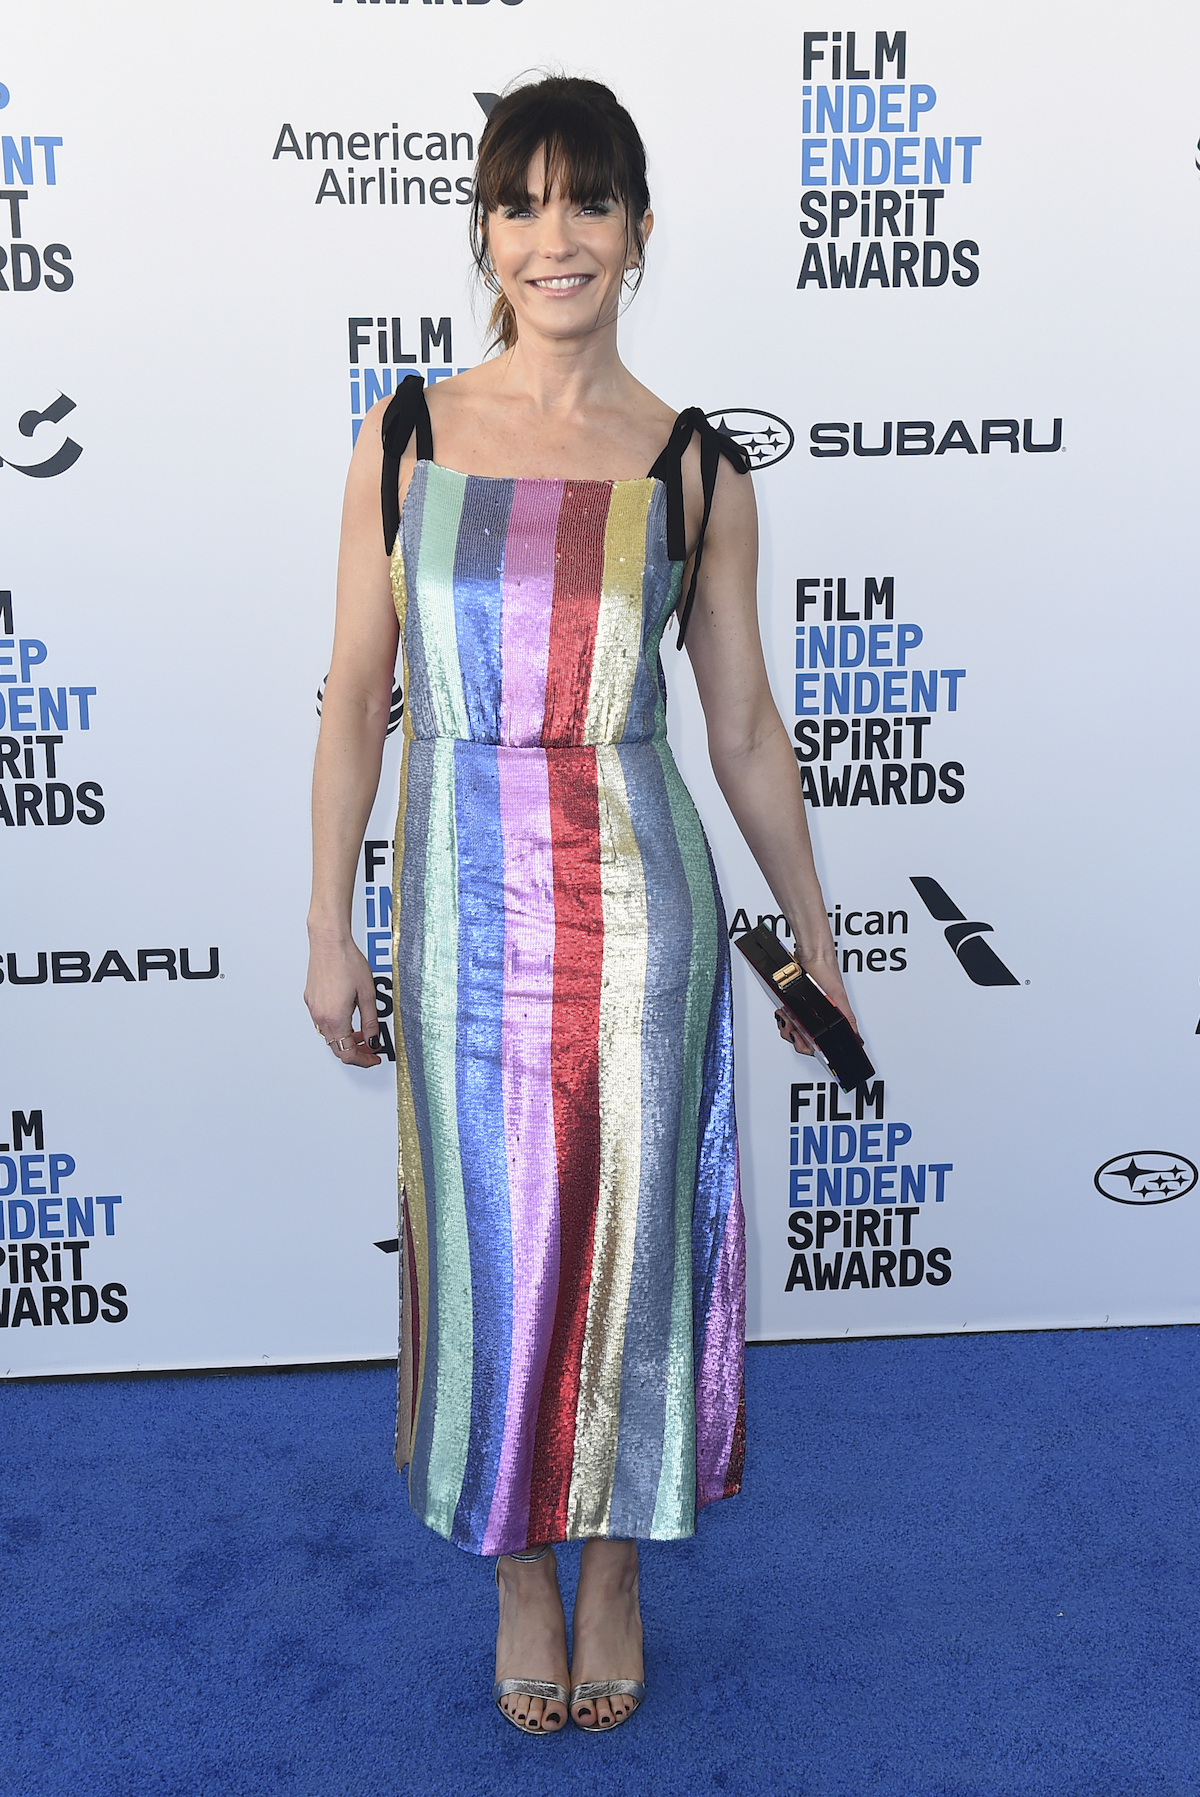 Independent Spirit Awards 2019